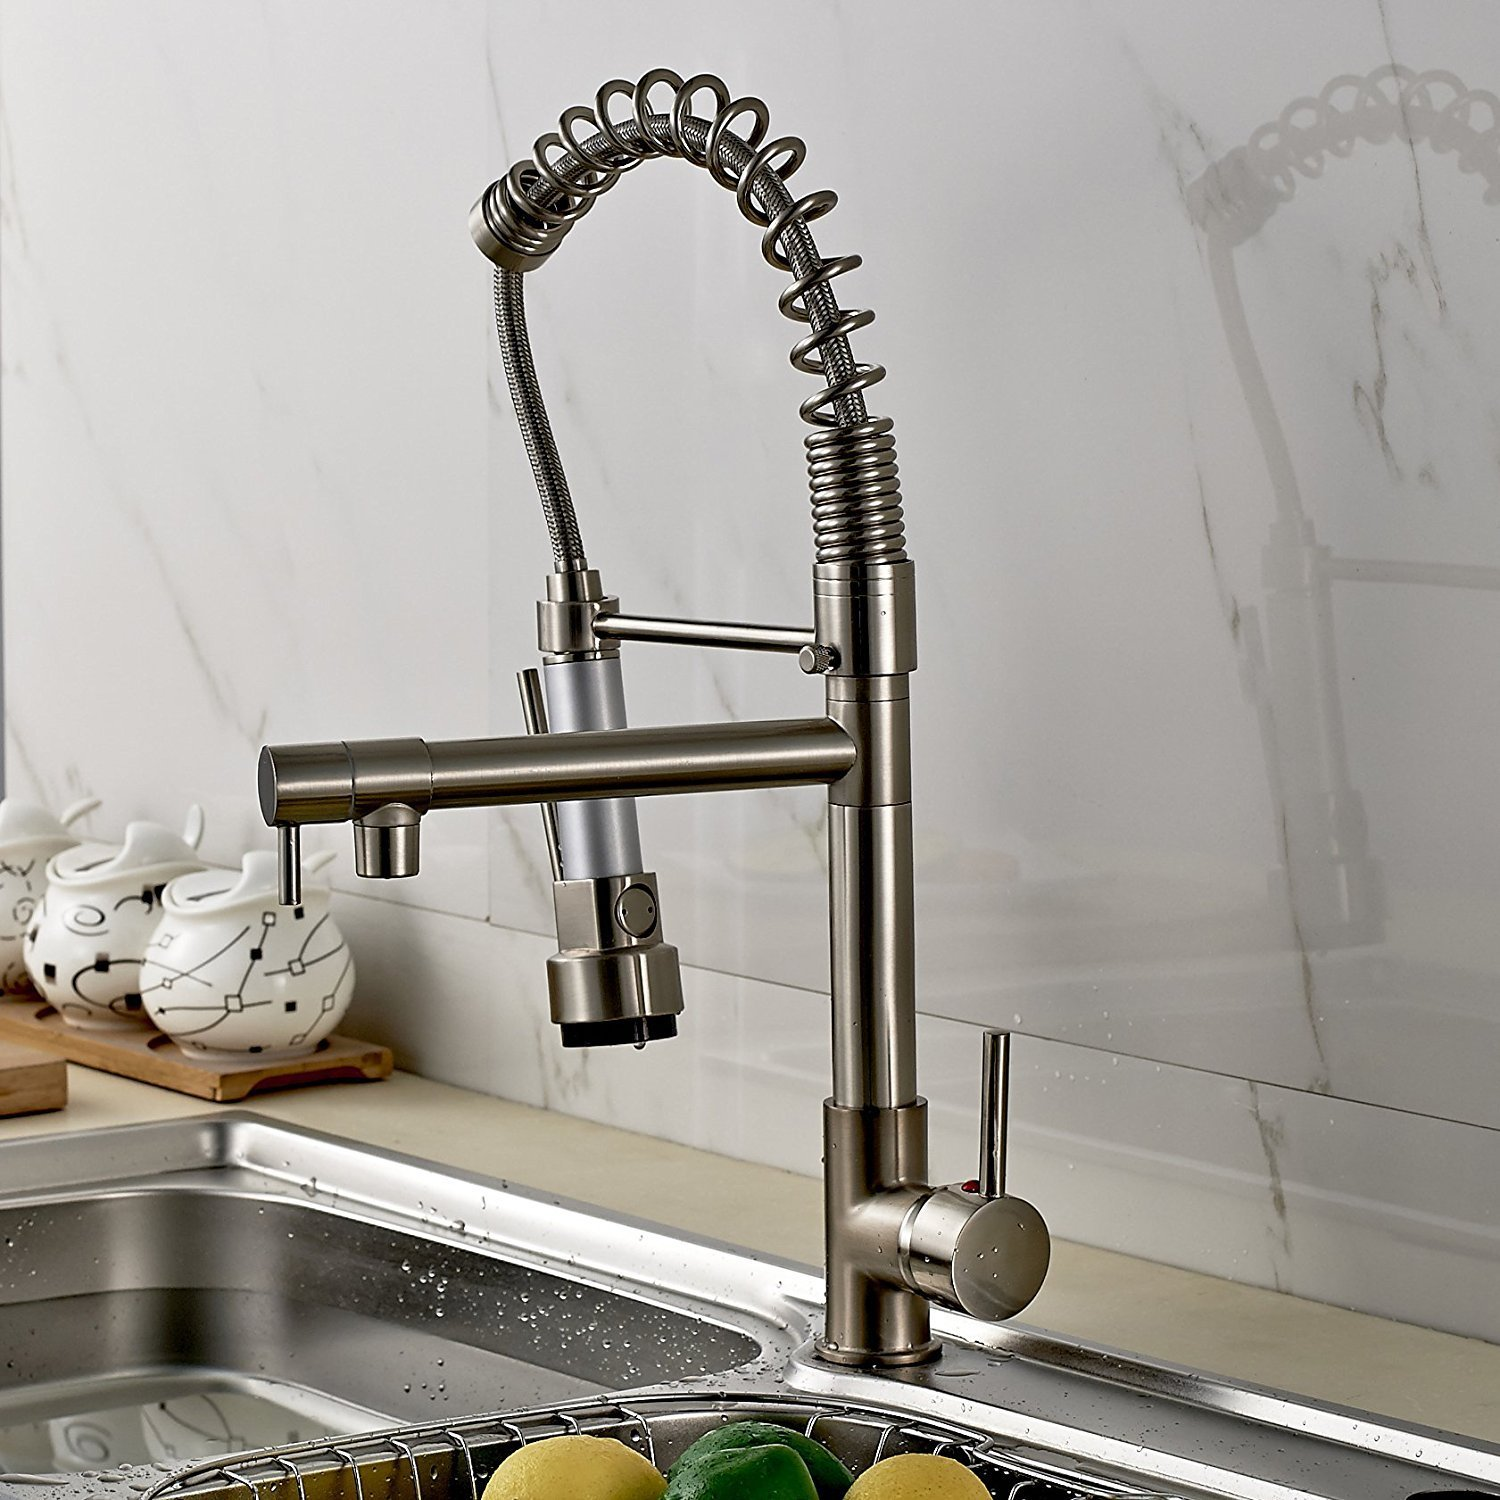 Sorrento Kitchen Sink Faucet With Pull Down Mixer Tap